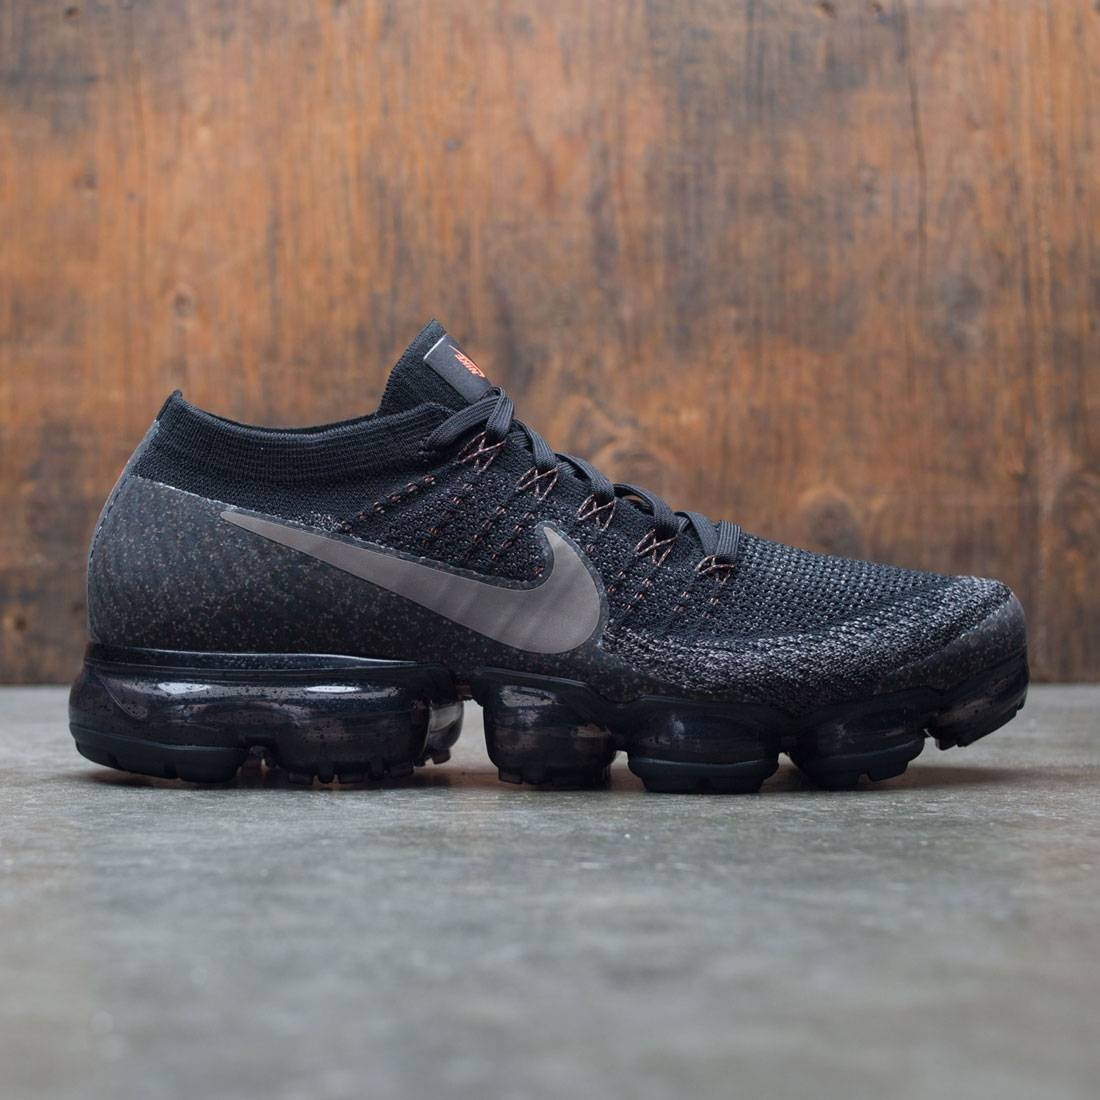 b7b003572920 nike men nikelab air vapormax flyknit running black dark mushroom midnight  fog